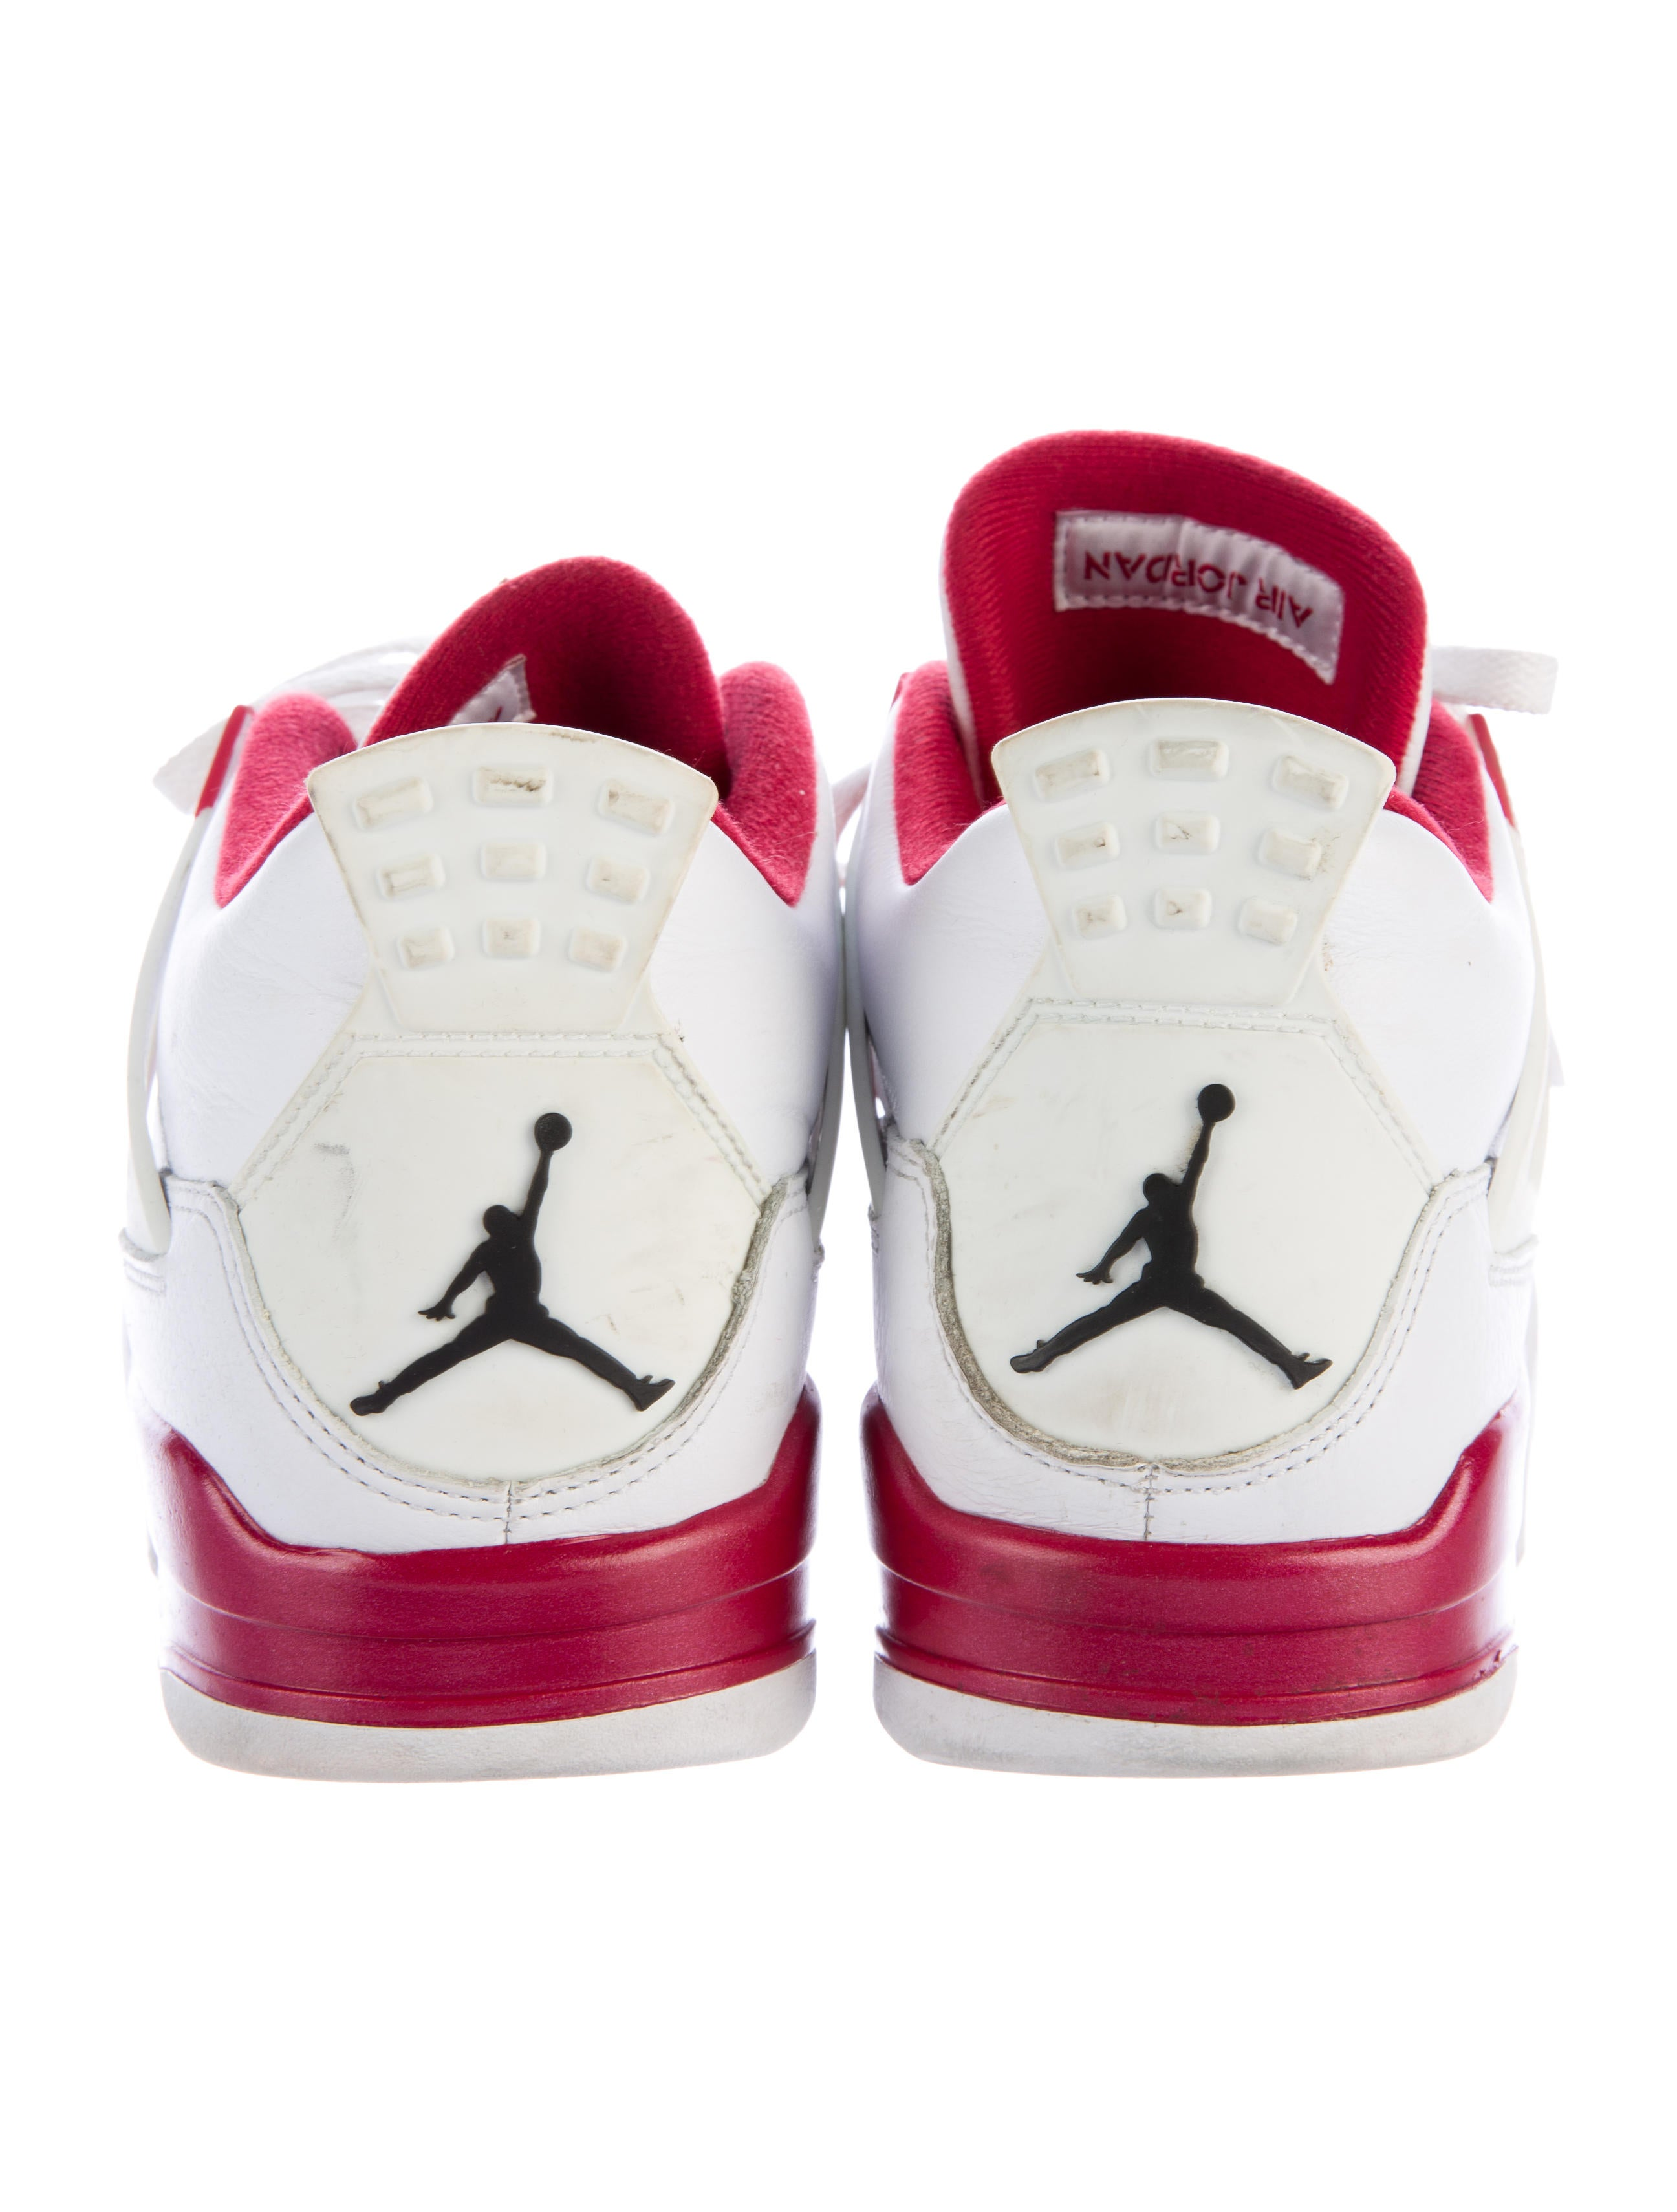 premium selection e8316 5439f ... blanc bb288 31567  australia nike air jordan shoes retro 1 89 29db9  a0672